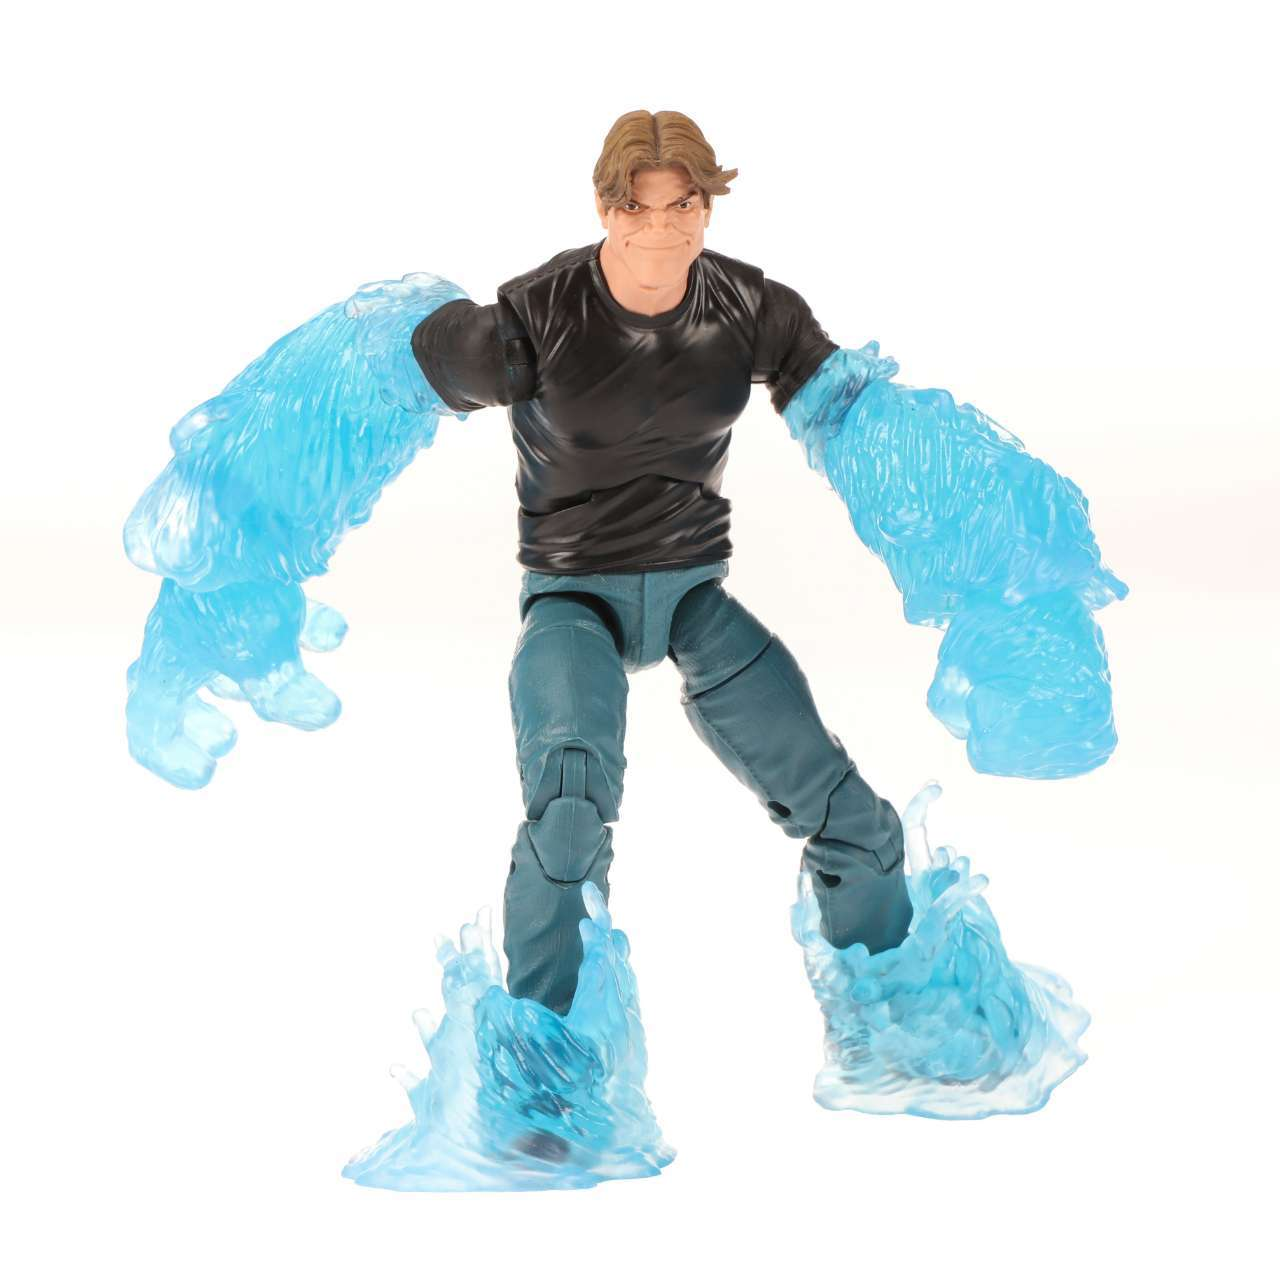 Marvel Spider-Man Legends Series 6-Inch Hydro Man Figure oop